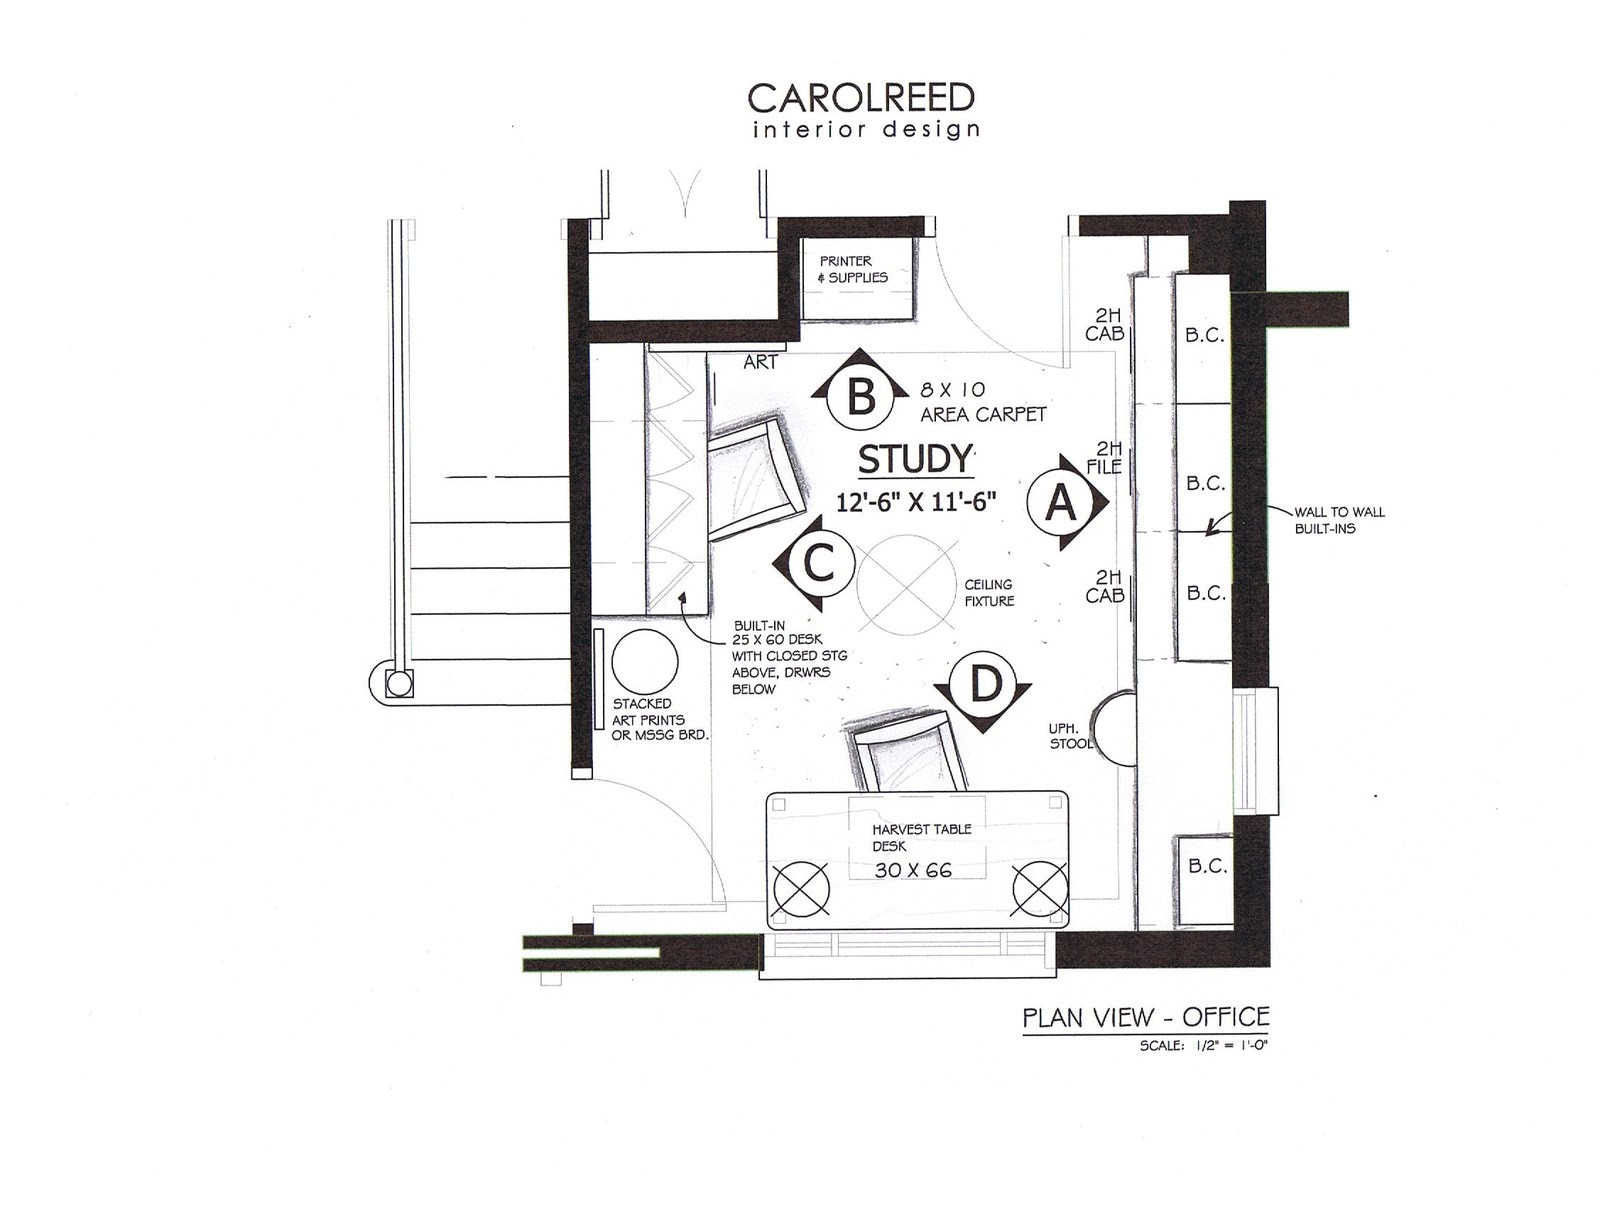 Home Office Plans Creed A Family Home Office